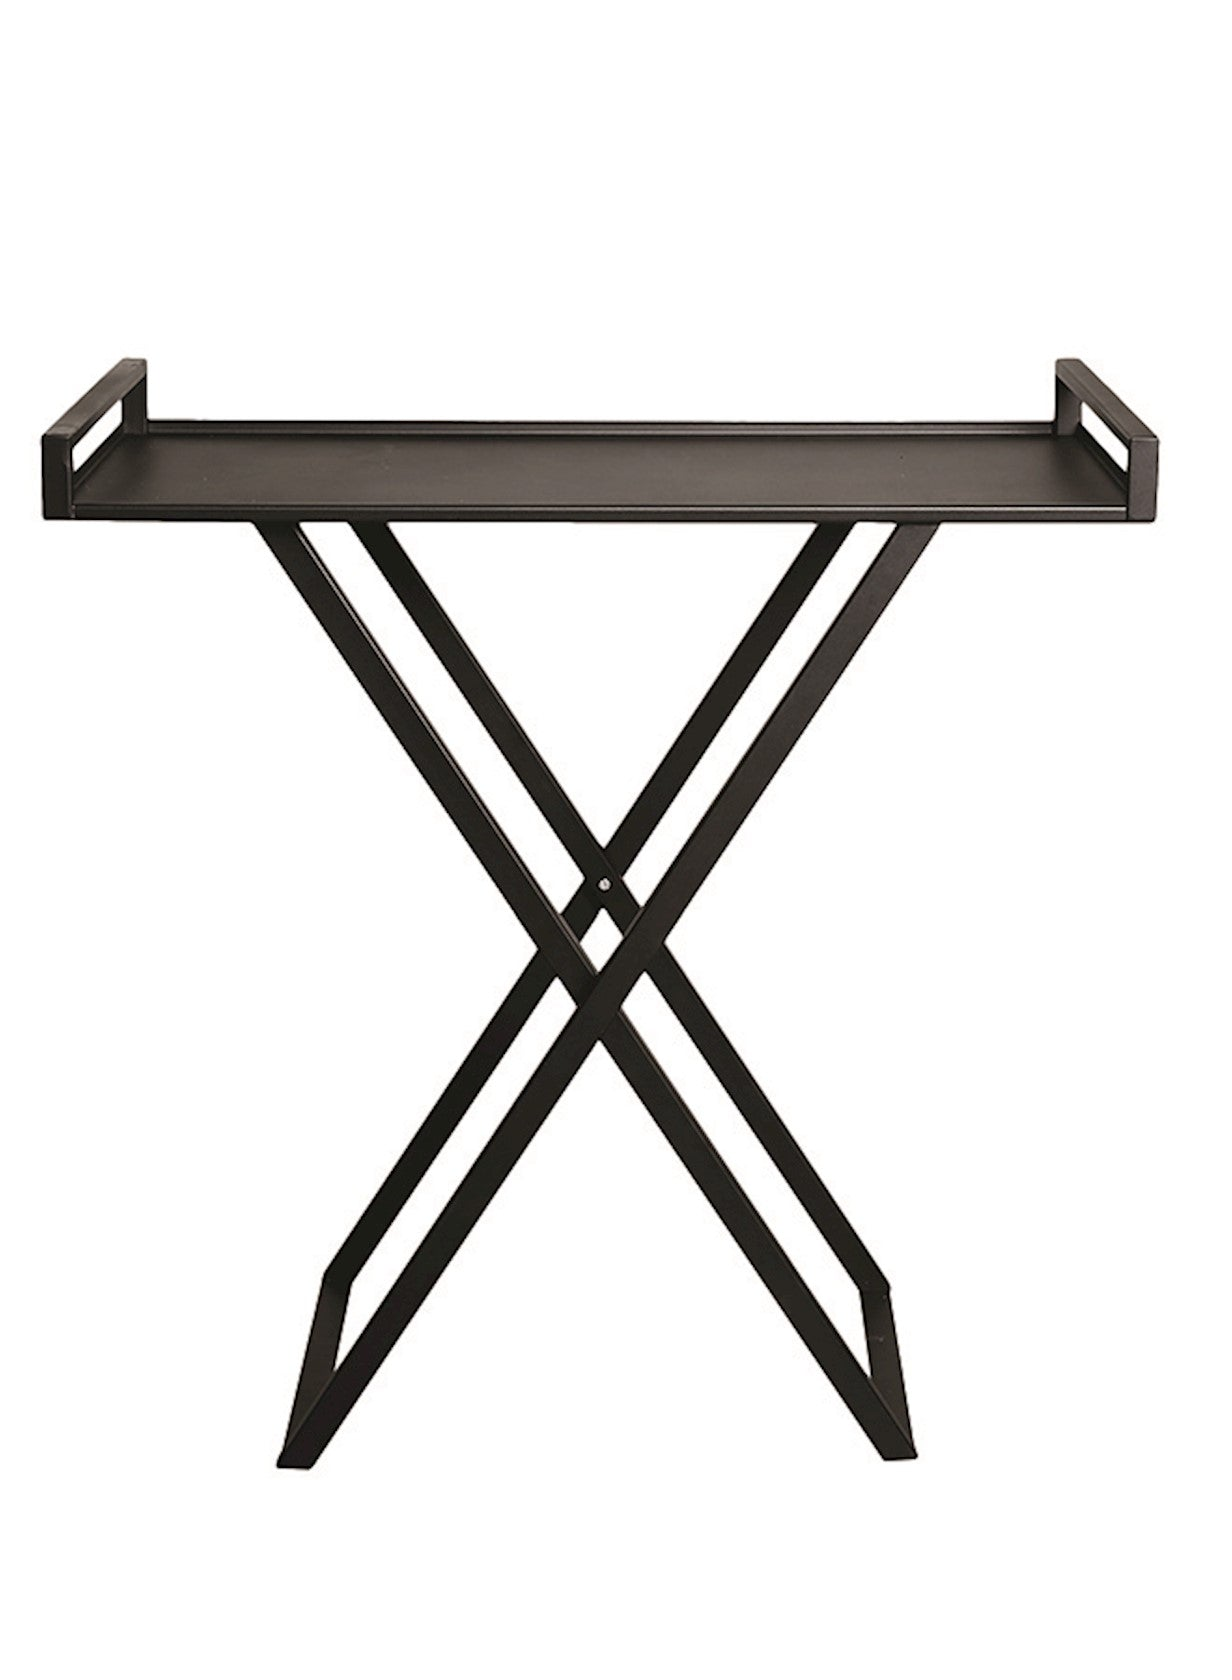 FOLDING SIDE TABLE 'IRON' - Side Tables - SCAPA HOME - SCAPA HOME OFFICIAL